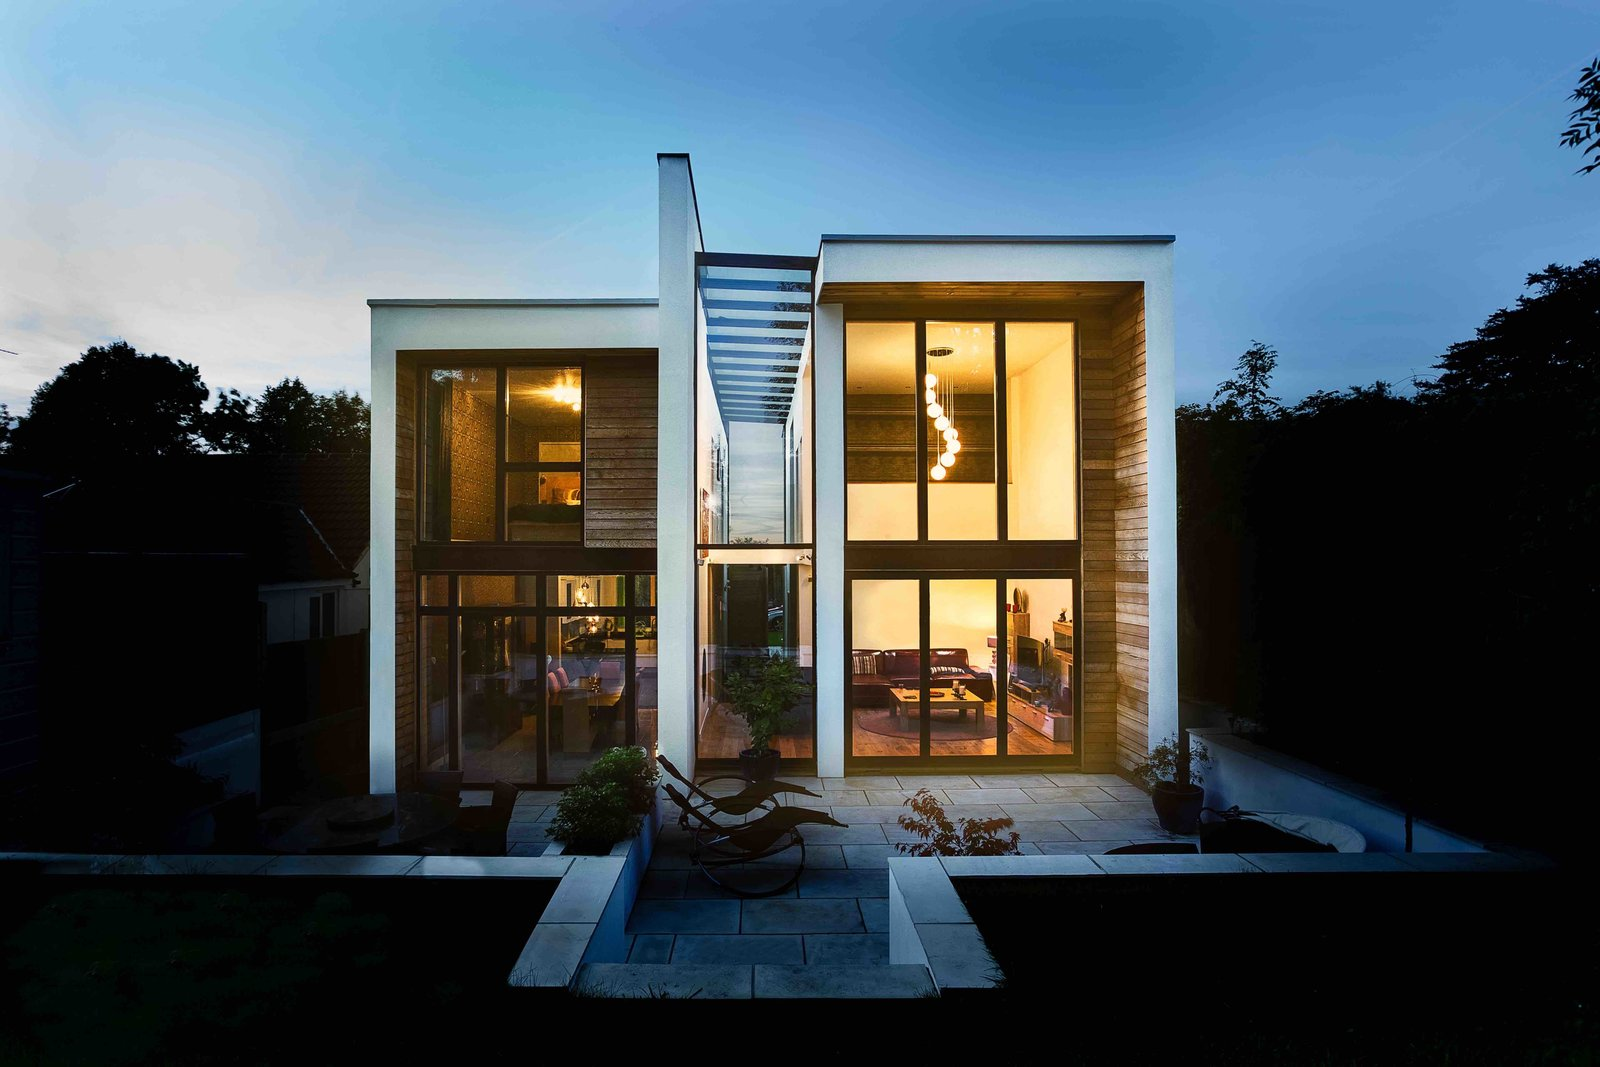 Where once there was a timeworn 1950s bungalow in the Metropolitan Green Belt south of London, there now stands a dynamic house whose two volumes are joined by a glass atrium. The project was designed by Grant Freeman of OB Architecture.